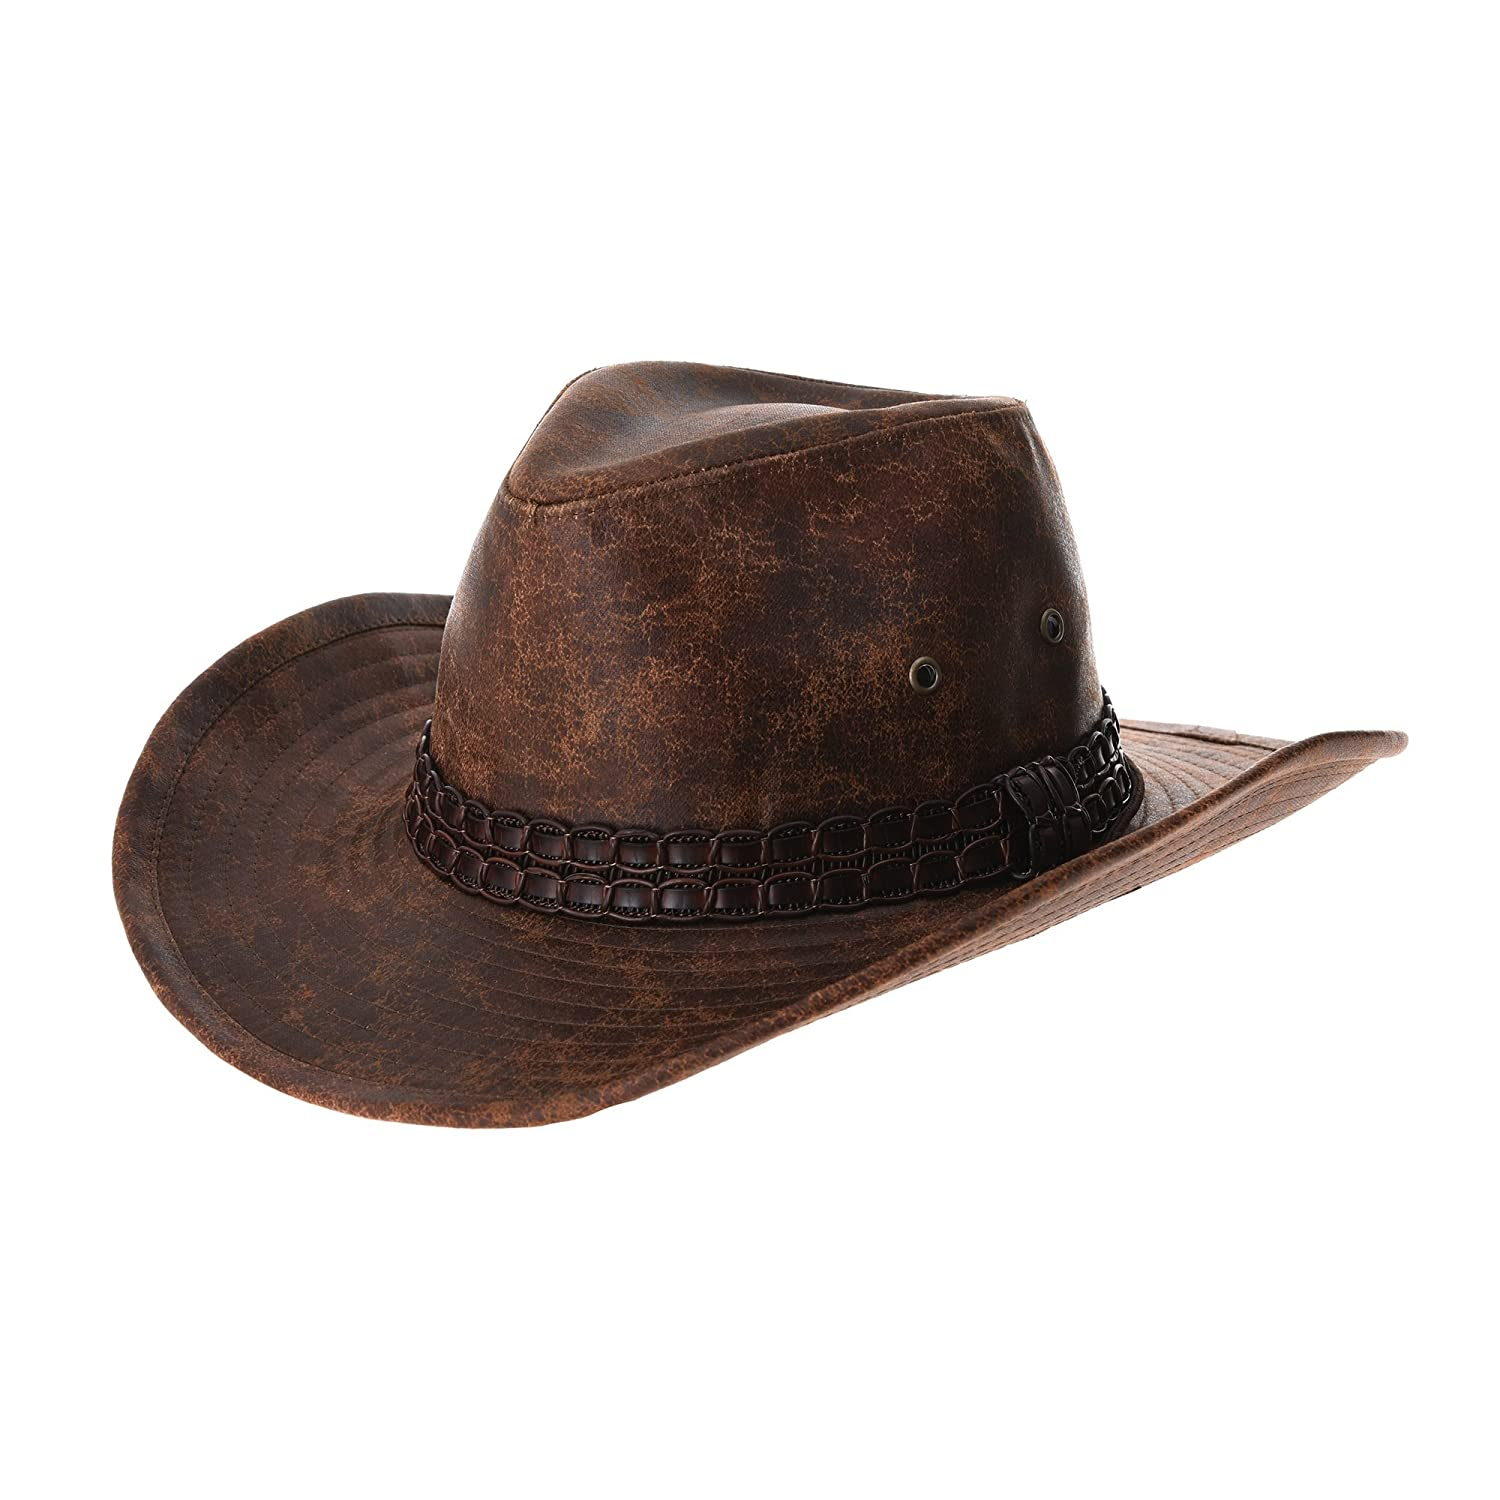 WITHMOONS Indiana Jones Hat Weathered Faux Leather Outback Hat GN8749 GN8749Beige